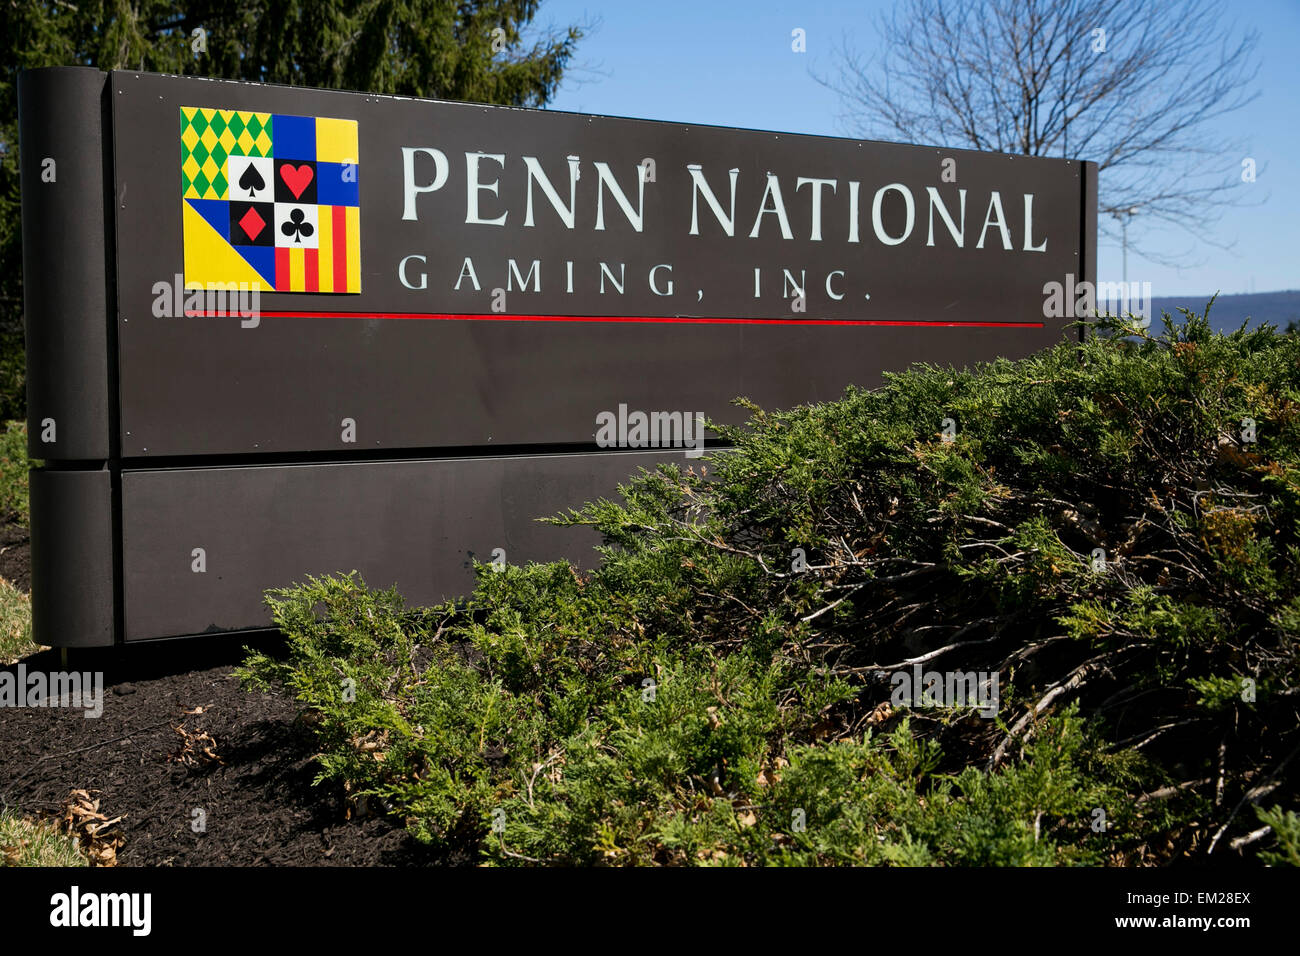 Un logo signer devant le siège de Penn National Gaming, Inc., dans Wyomissing, Pennsylvanie. Photo Stock